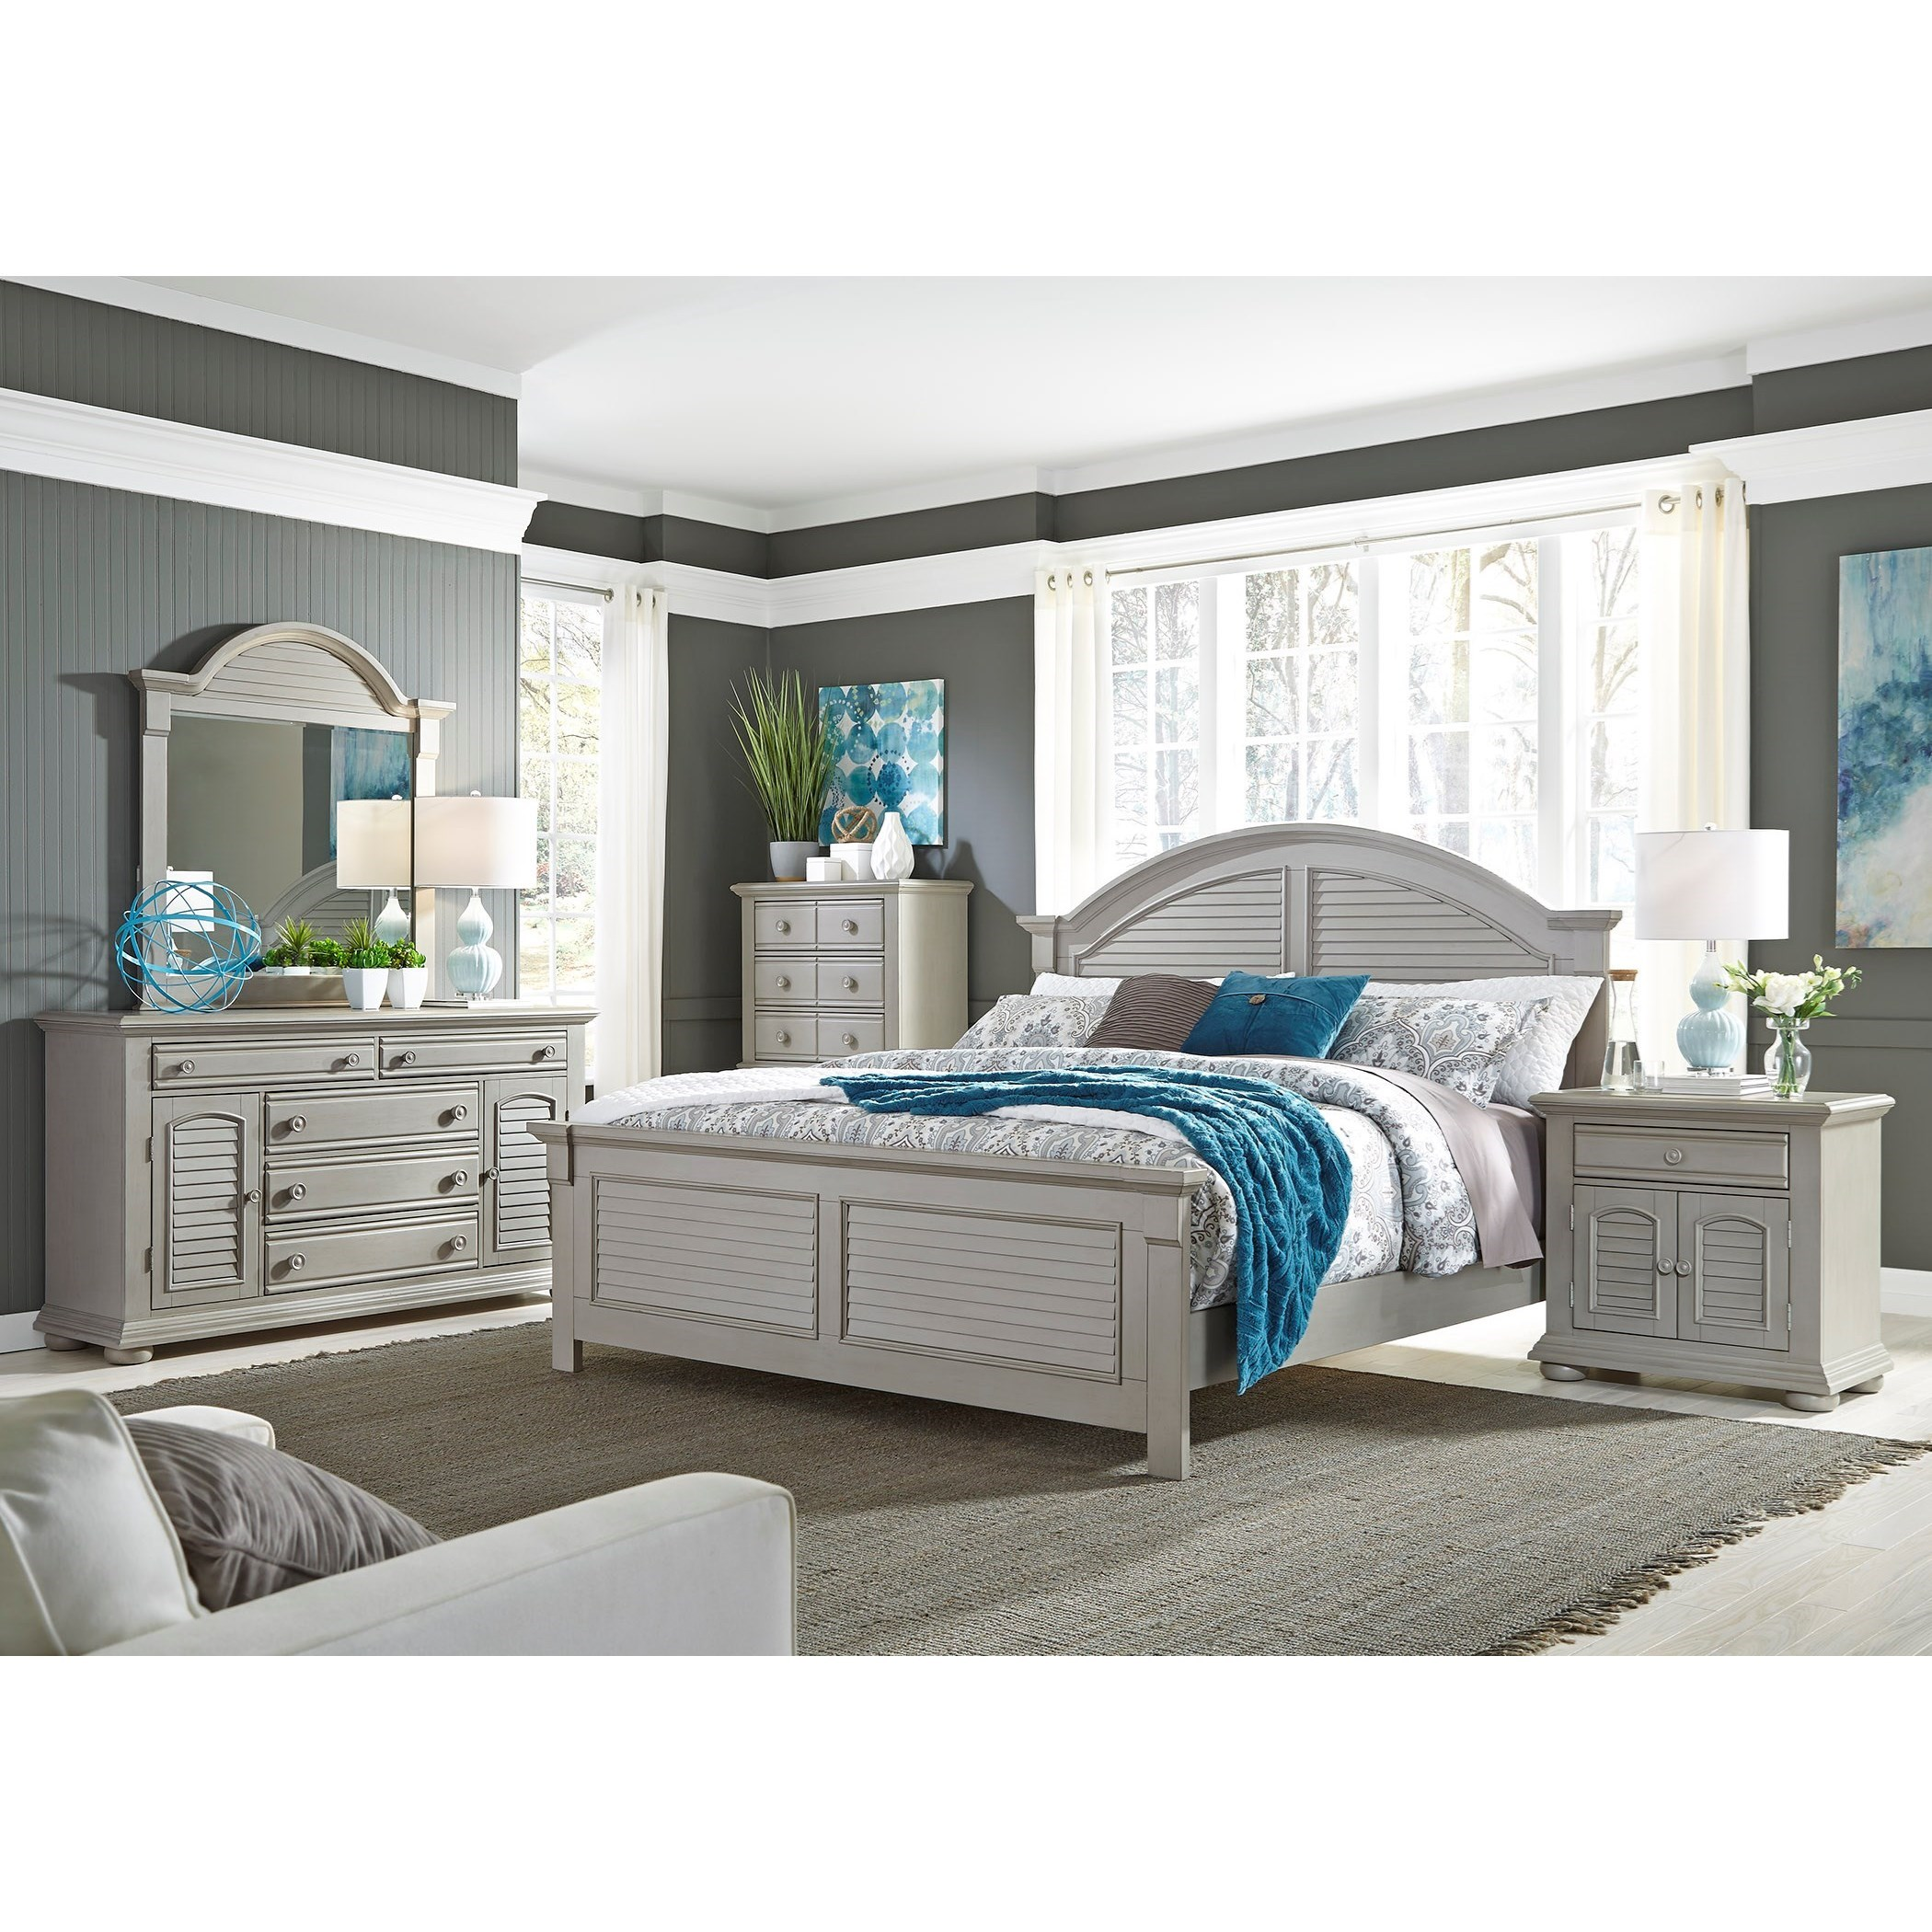 Liberty Furniture Summer House Ii 407 Br61 2 Door 1 Drawer Nightstand Furniture And